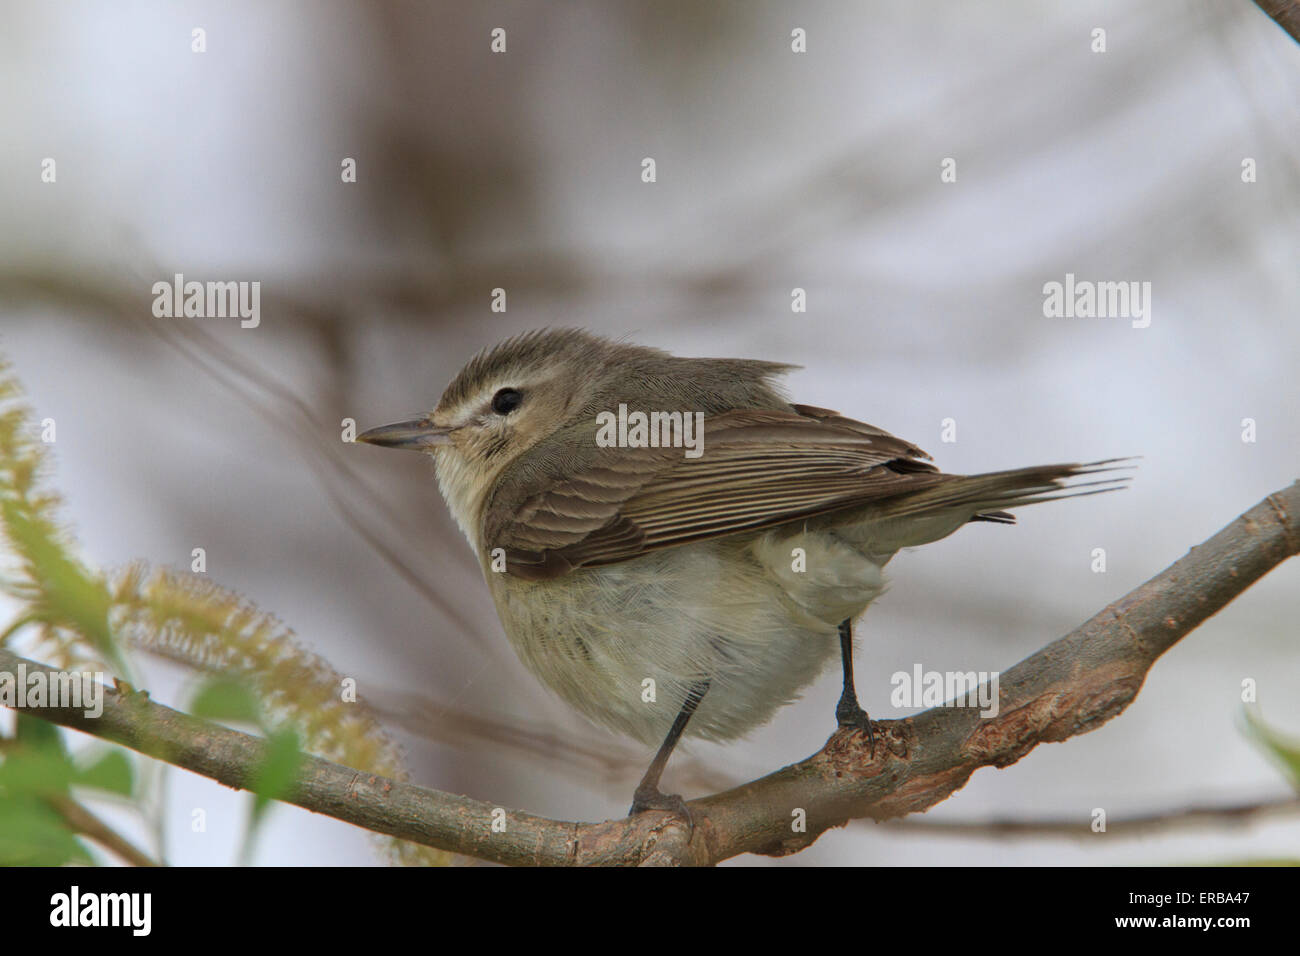 Warbling vireo (Vireo gilvus) on tree branch, Spring migration, Magee Marsh, Ohio. - Stock Image